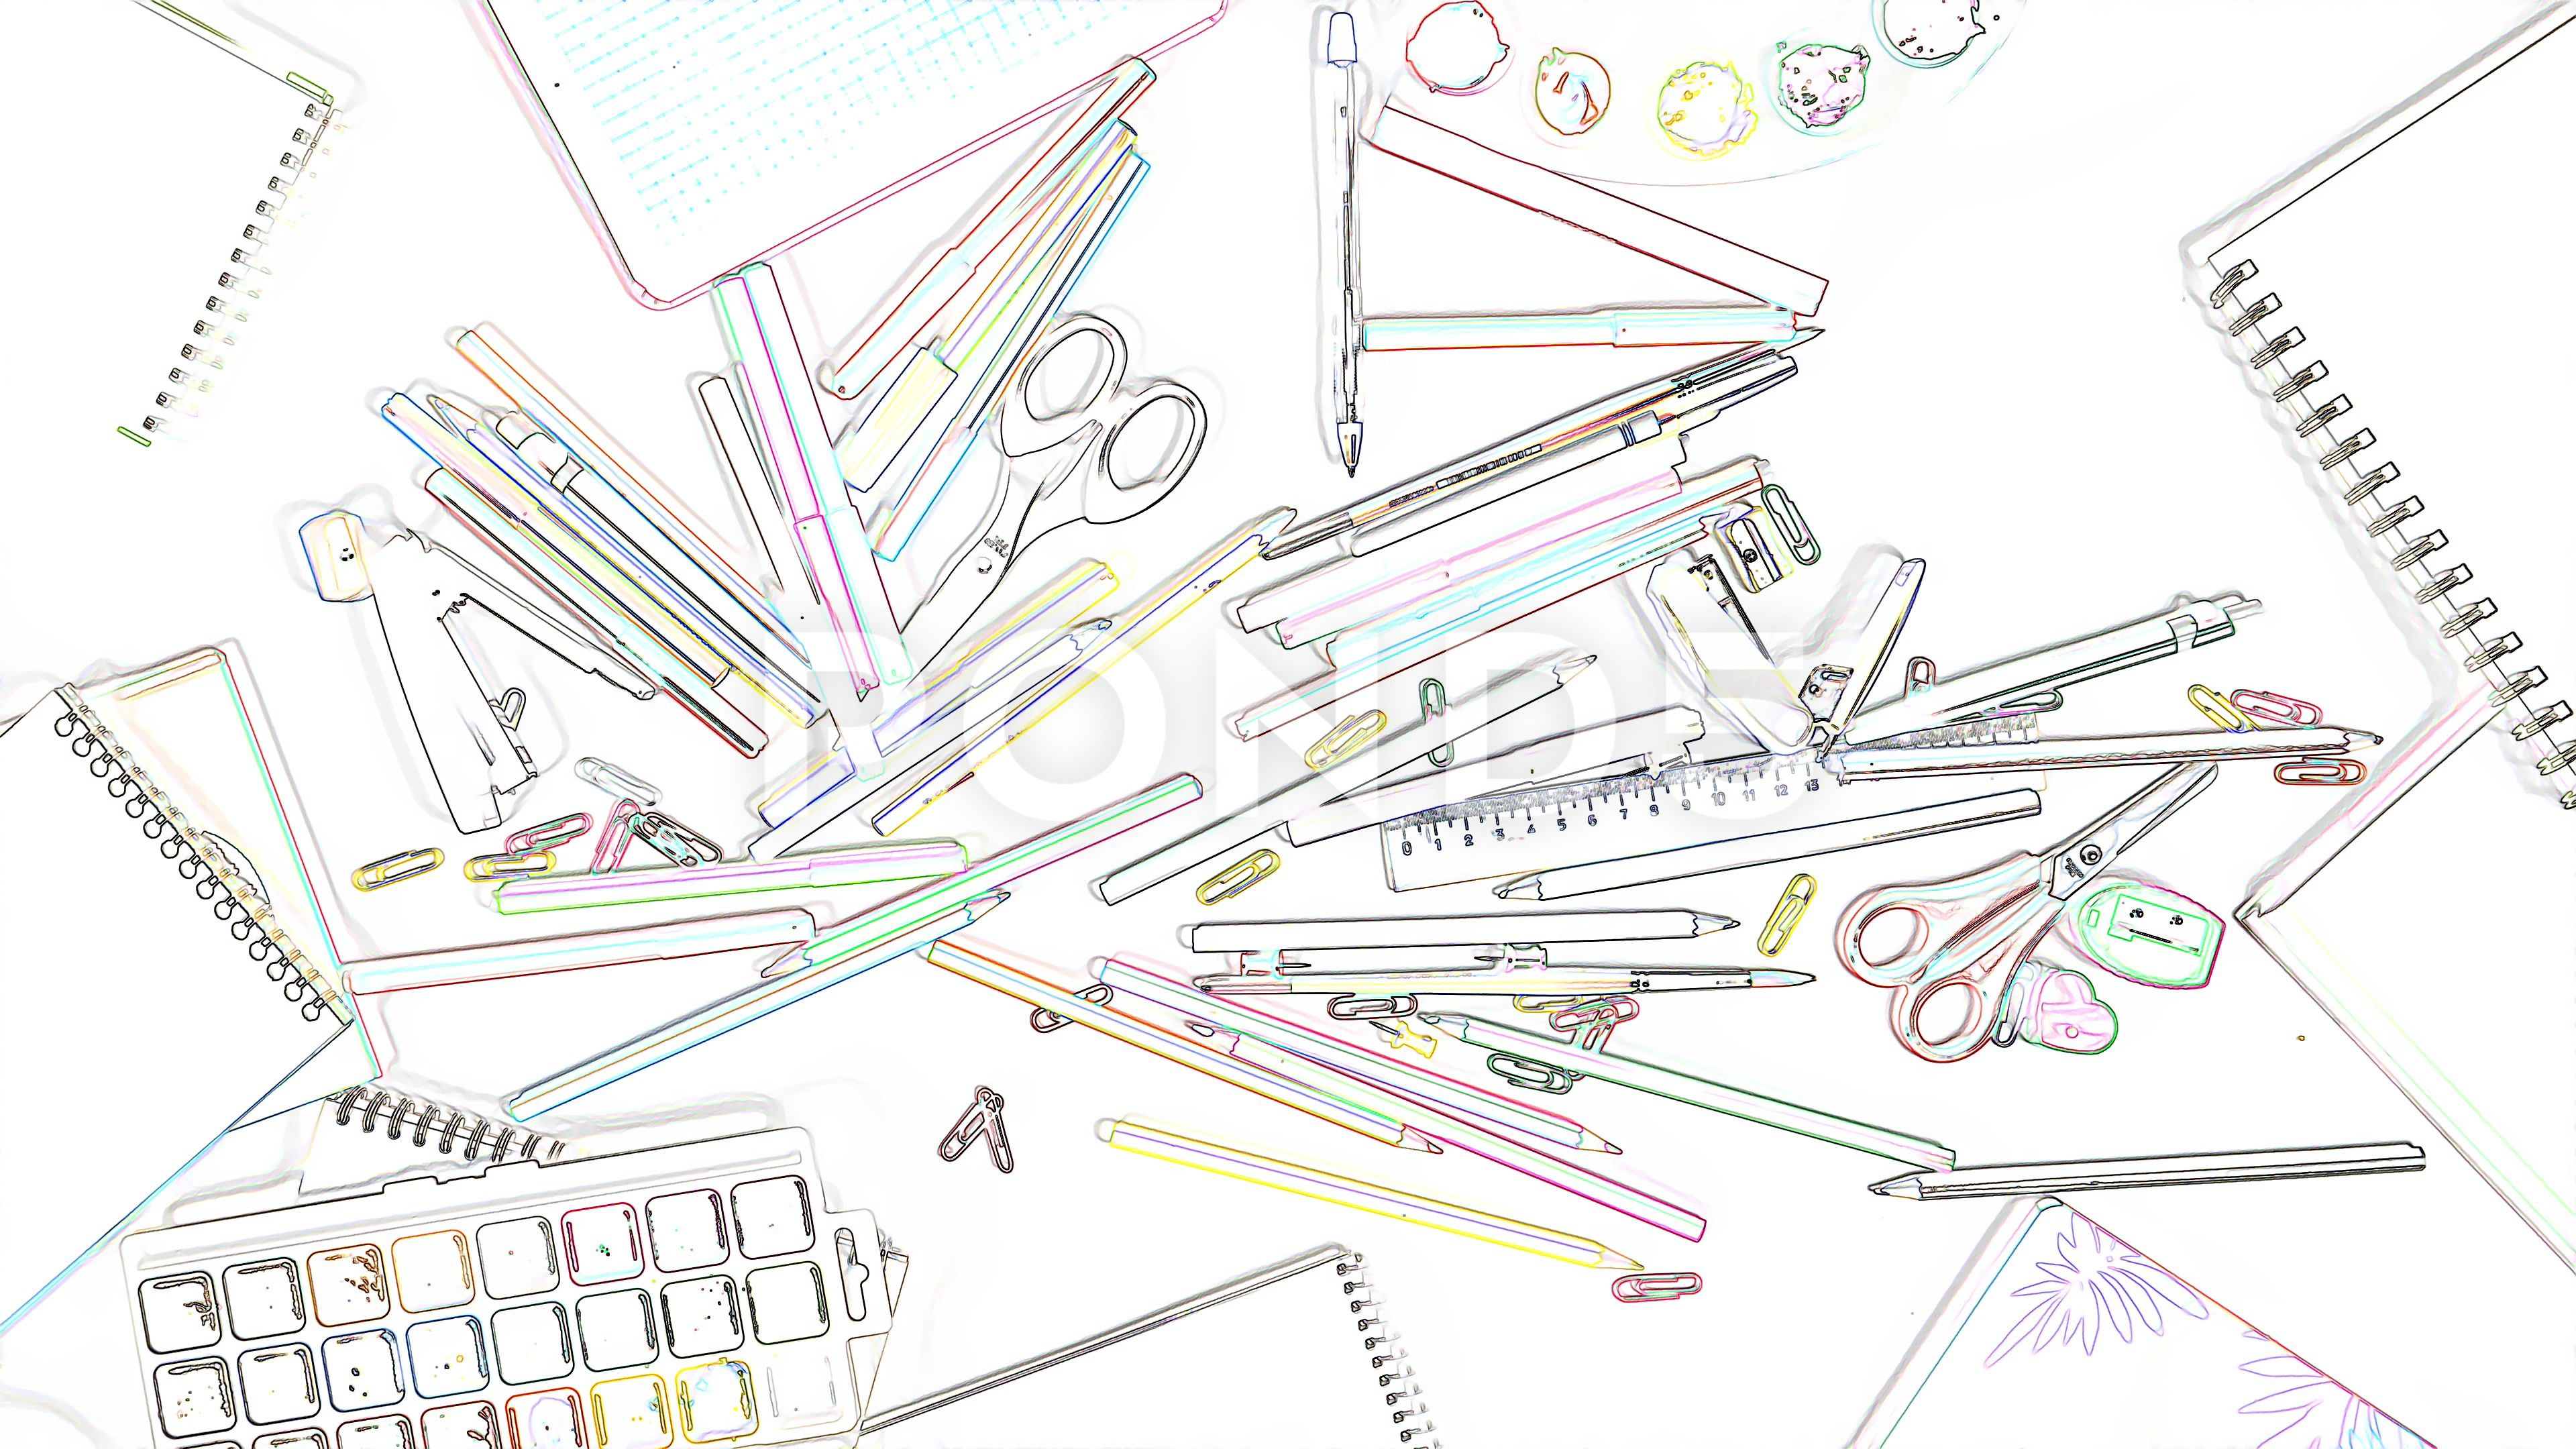 Sketch Animation Drawing Tools For Titles Or Designer Logo Looped Stop Motion Stock Footage Ad Tools Titles Designer S Animated Drawings Drawings Animation